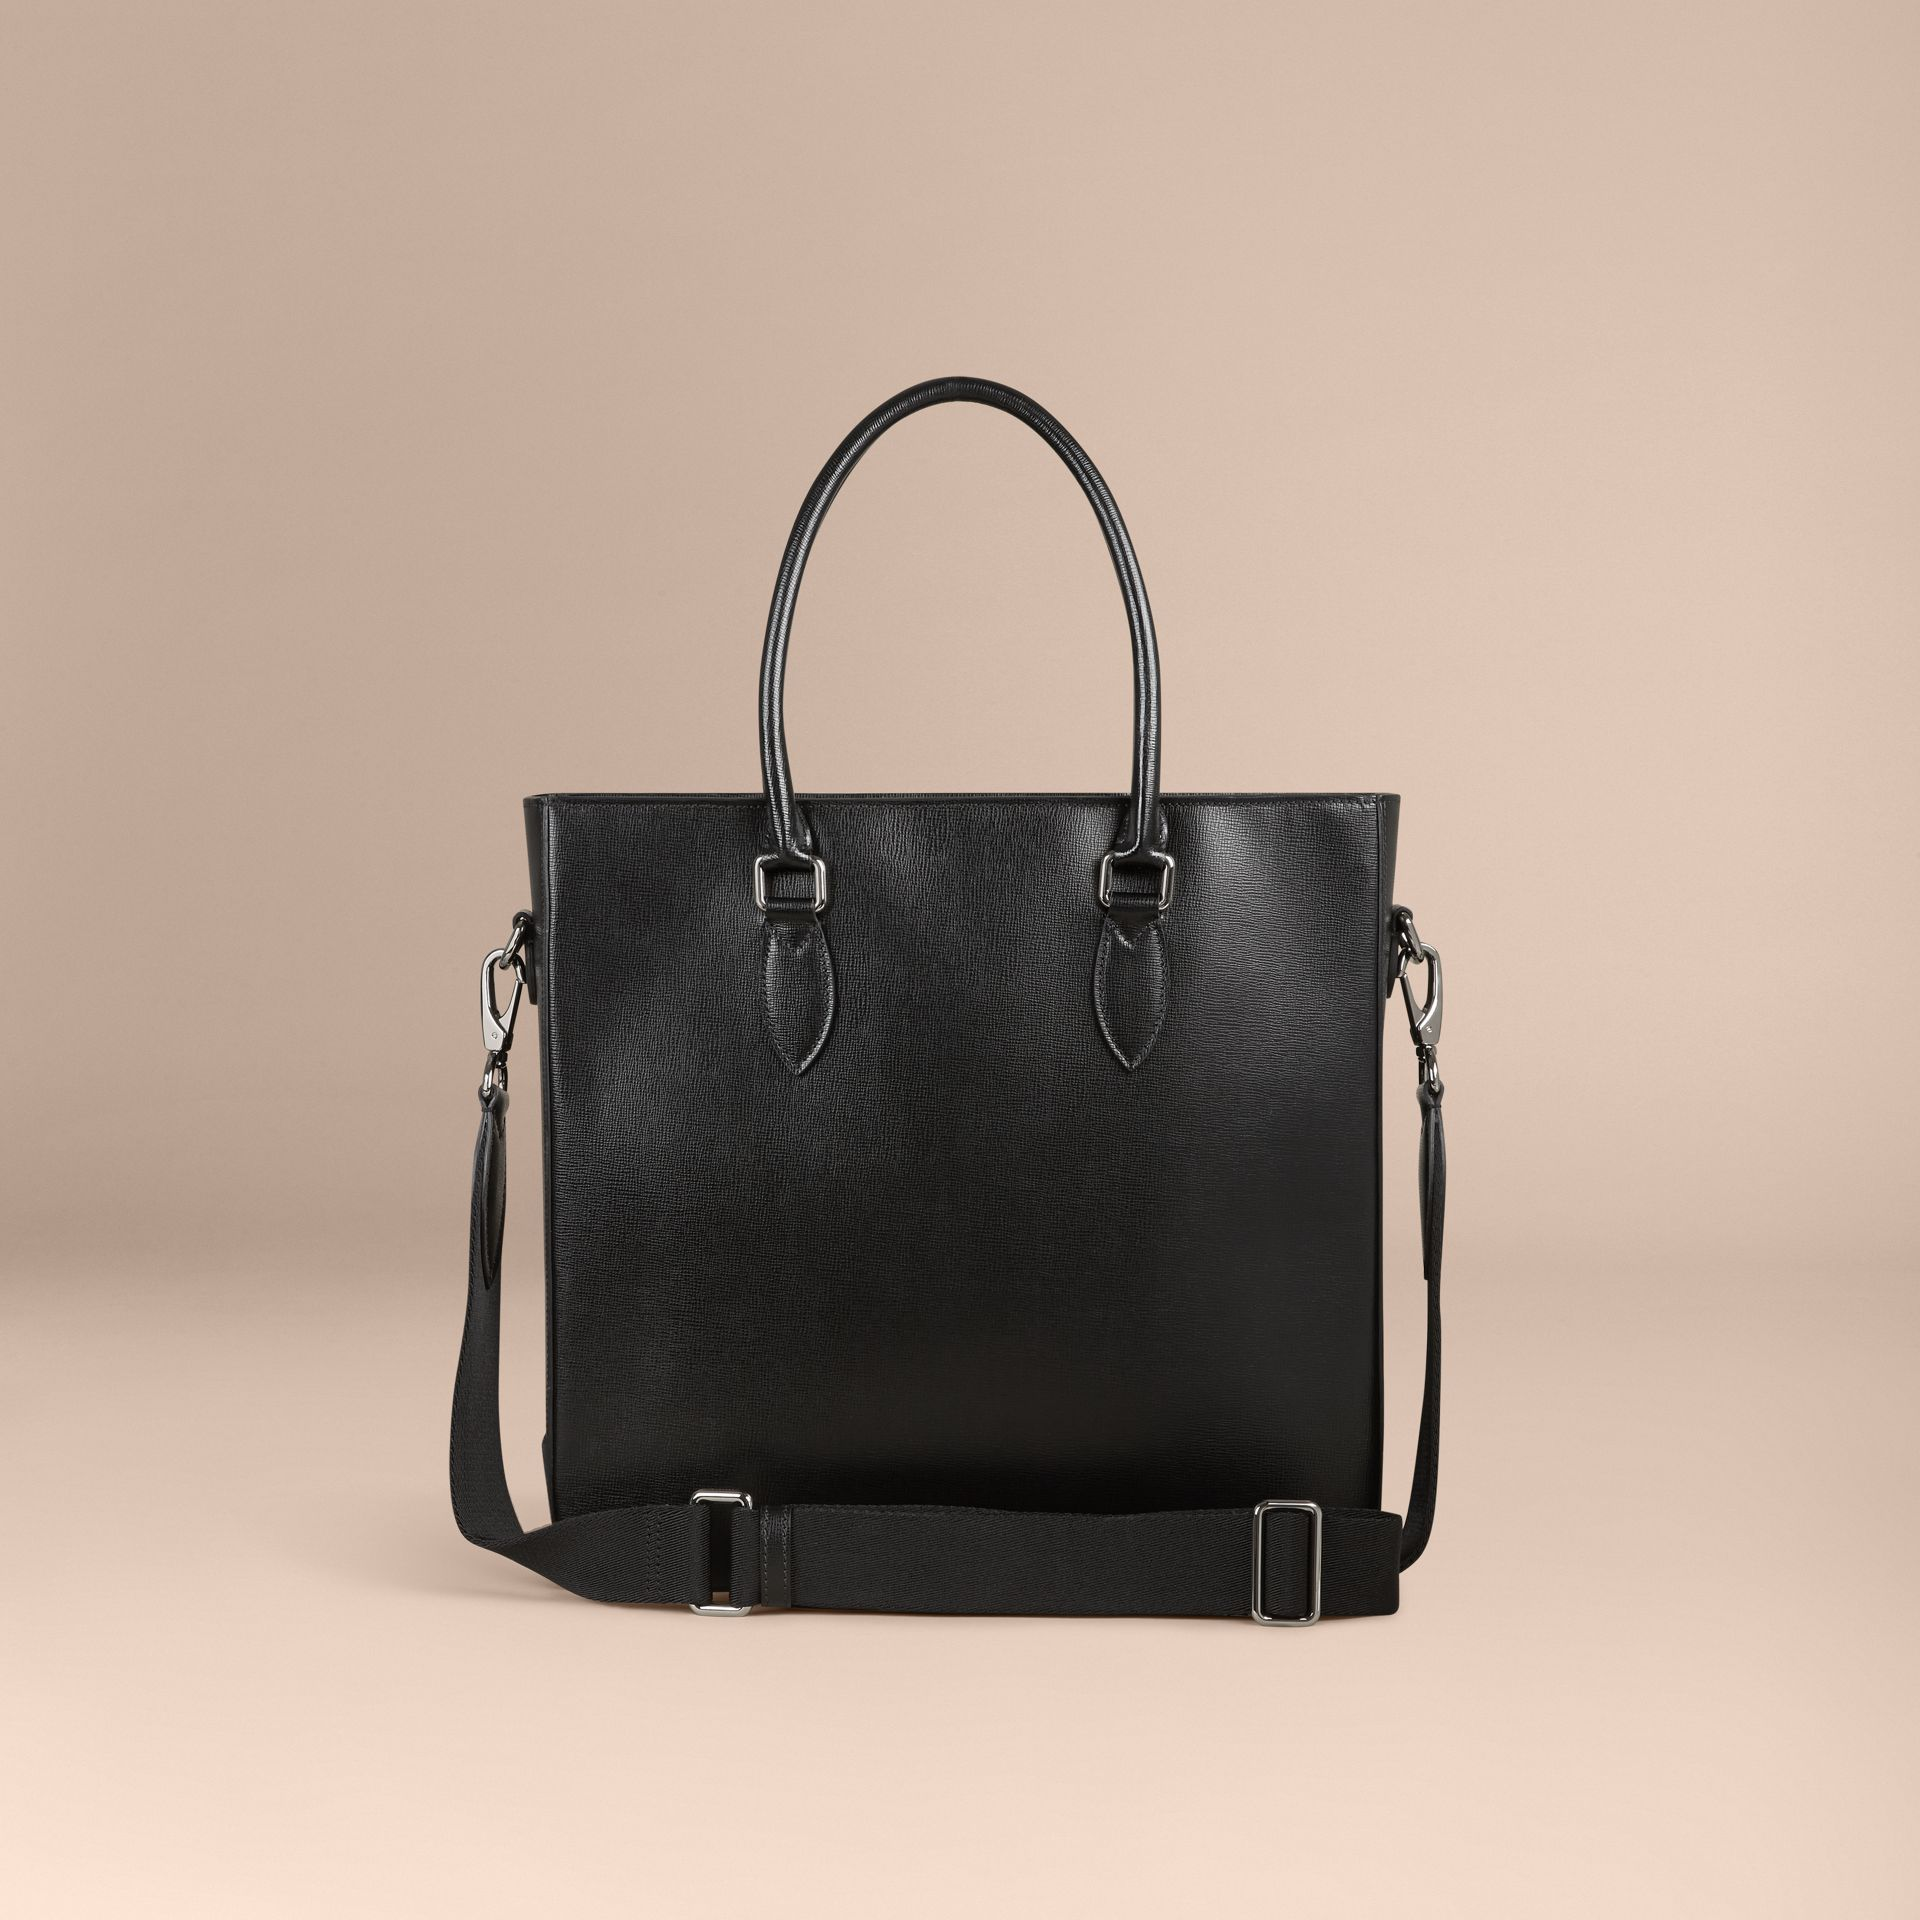 London Leather Tote Bag in Black - Men | Burberry - gallery image 5